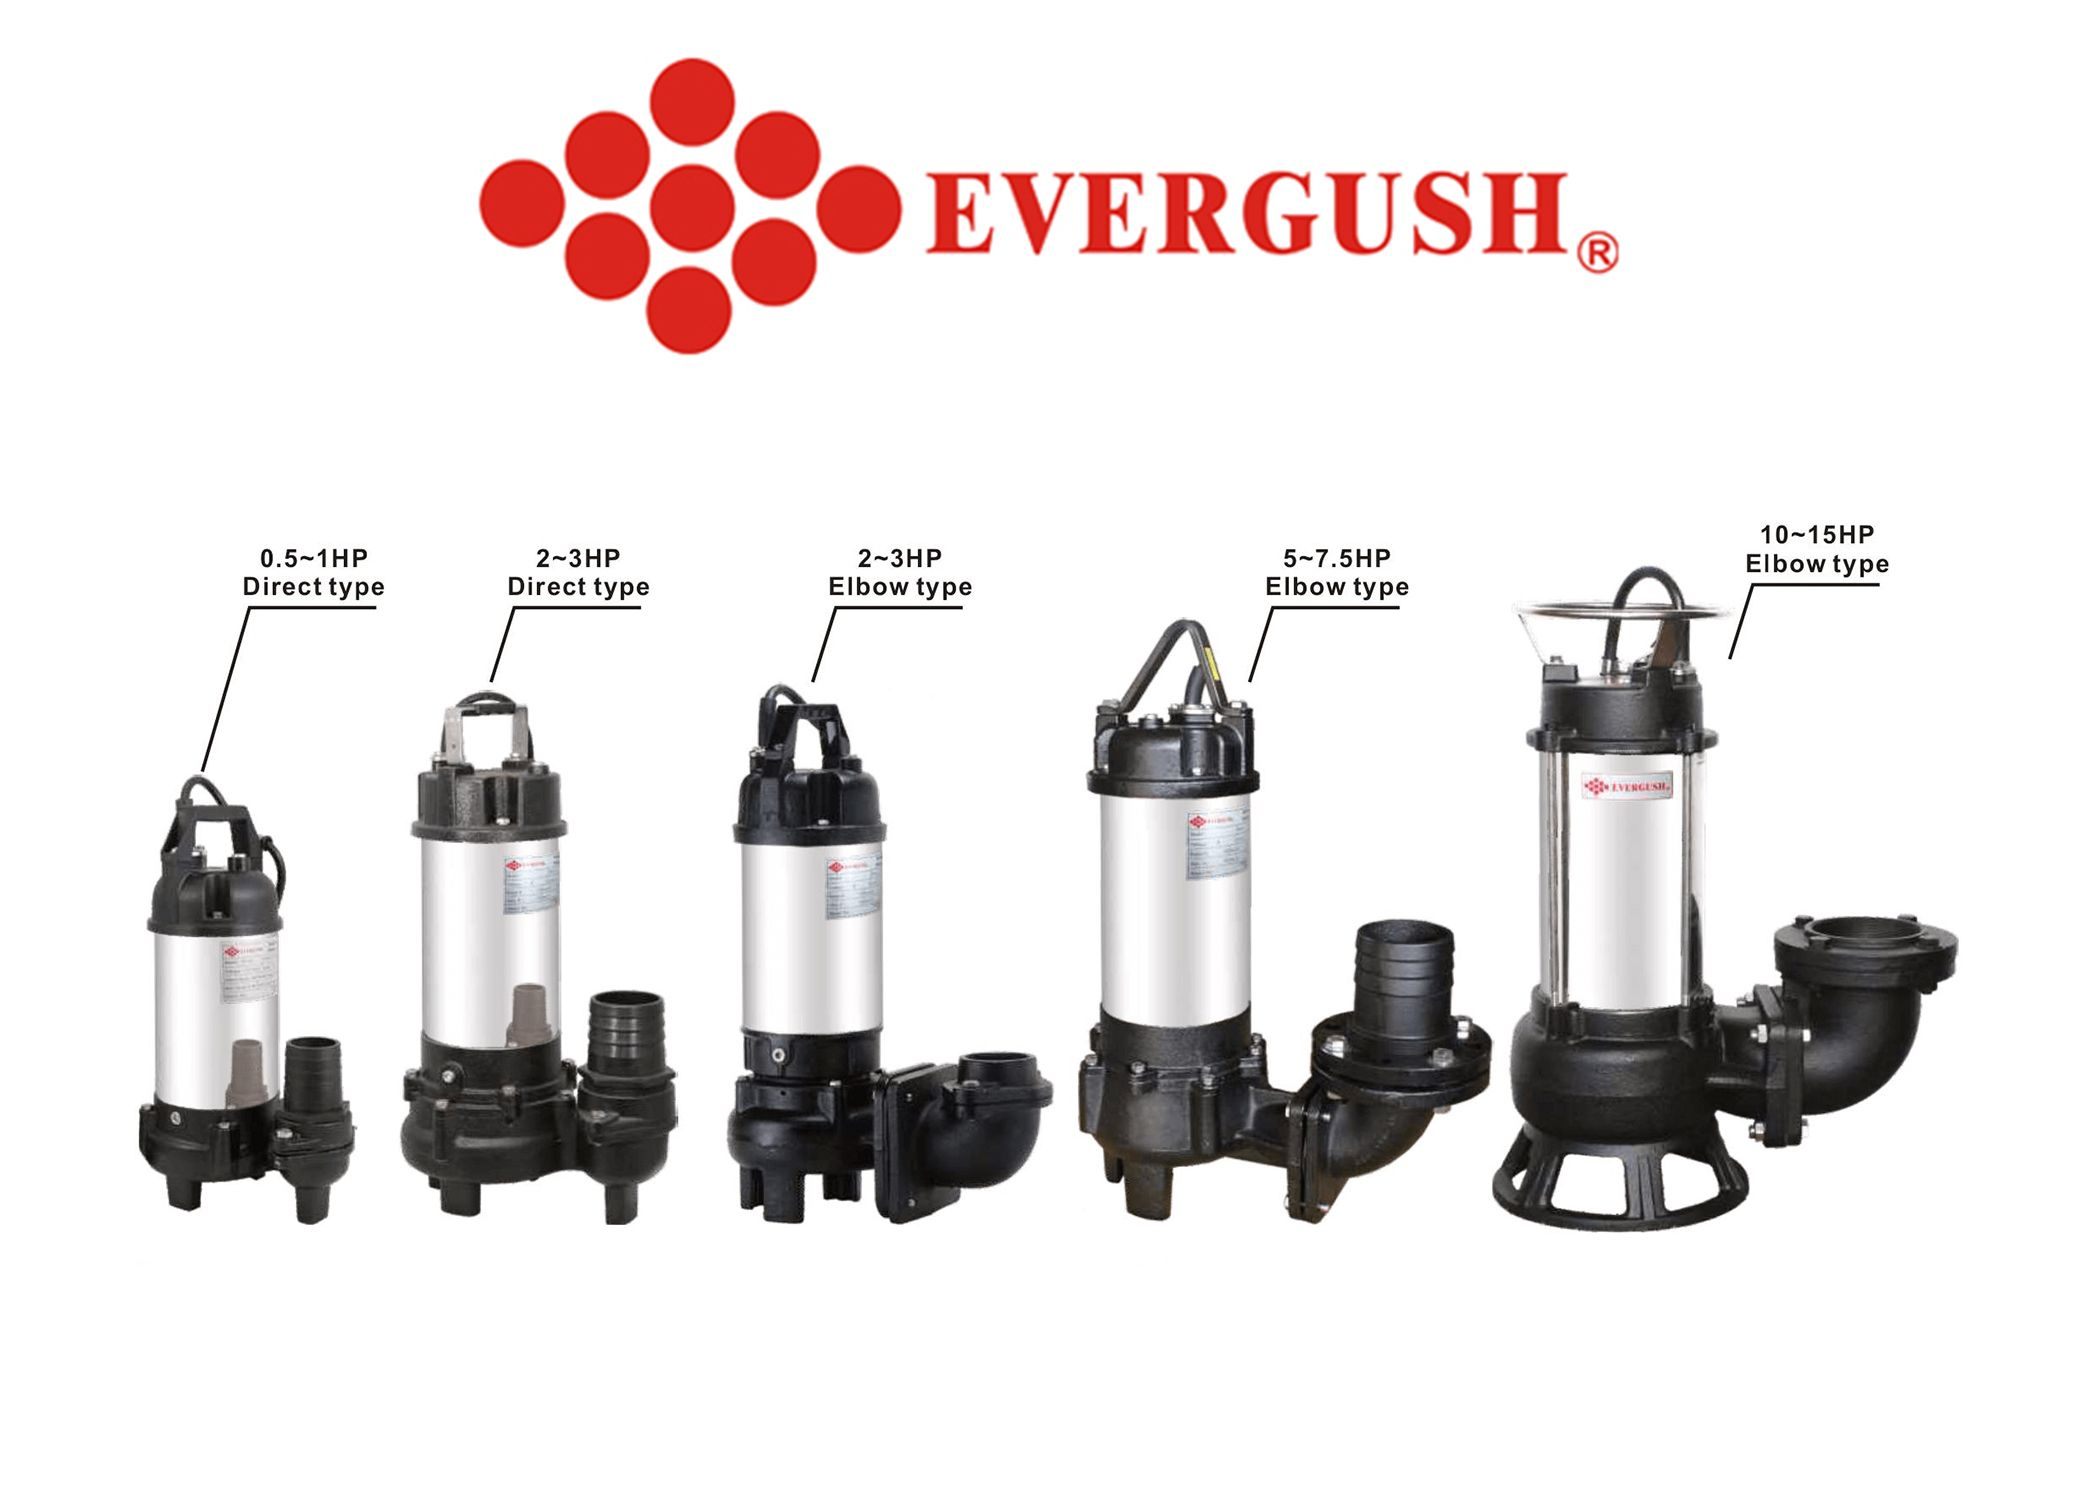 EF Series Sewage Pumps (0.5-1HP, 2-3HP, 5-7.5HP, 10-15HP)